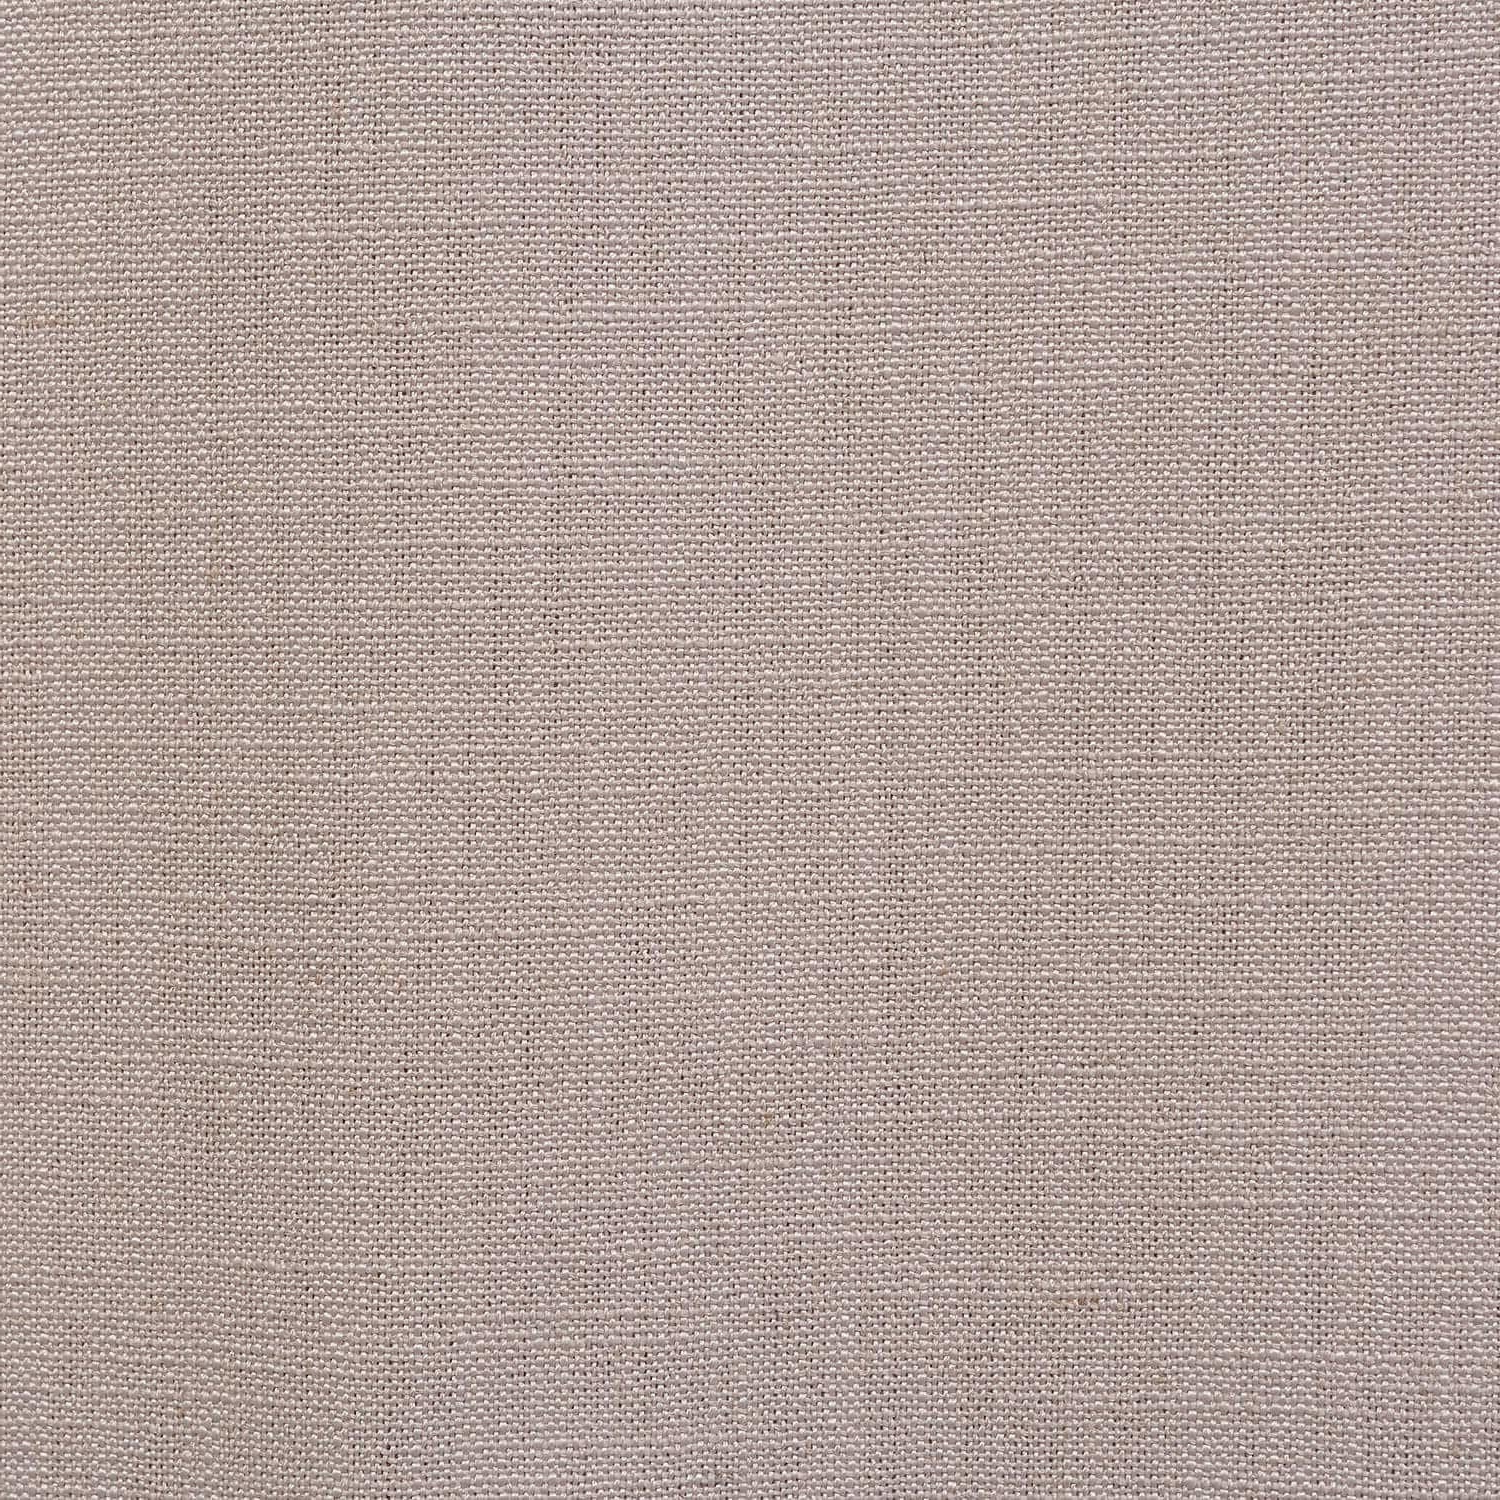 Favorite Heavy Faux Linen Single Curtain Panels Intended For Heavy Faux Linen Single Curtain Panel (View 16 of 20)